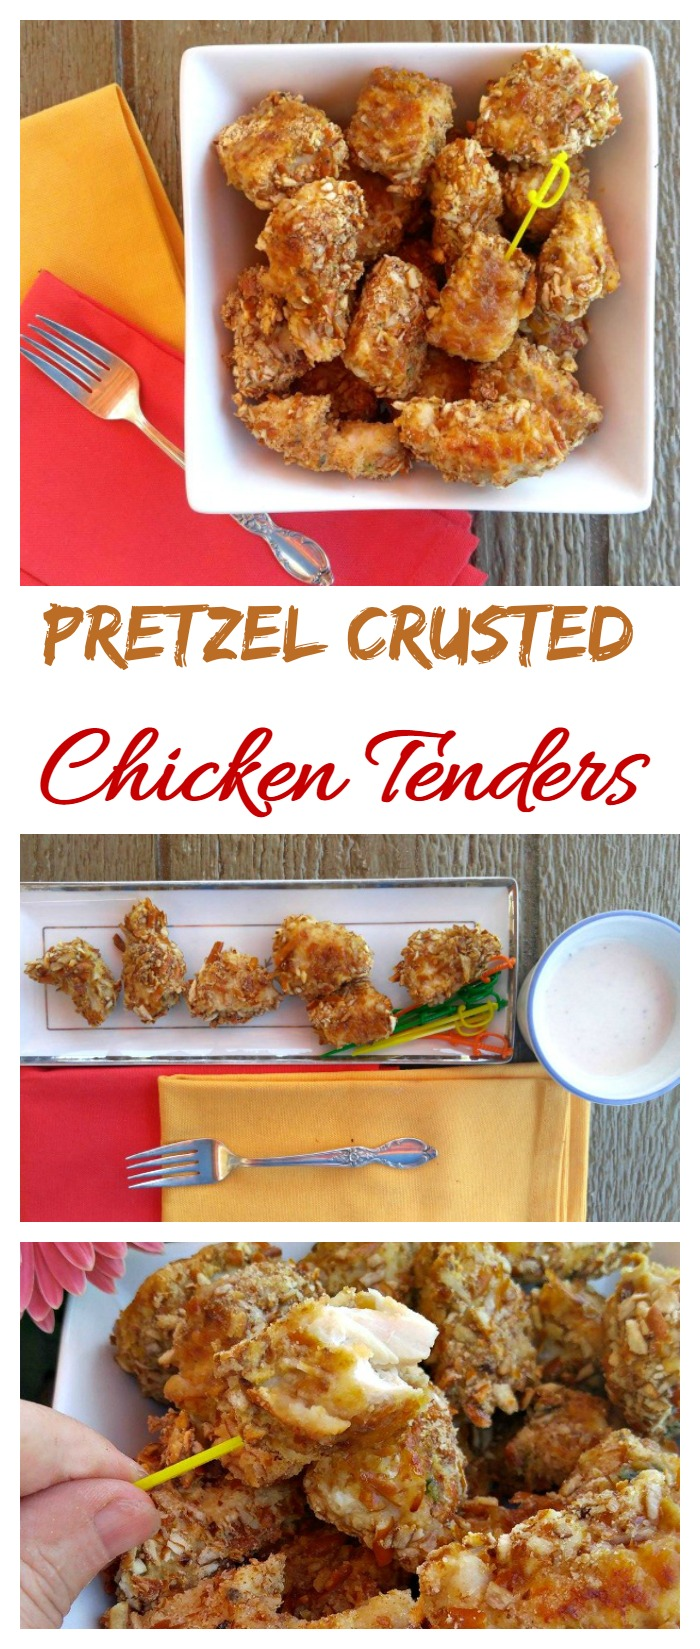 These amazing Pretzel crusted chicken tenders have a crunchy and salty coating with moist tender inside. They make a great main course or appetizer recipe